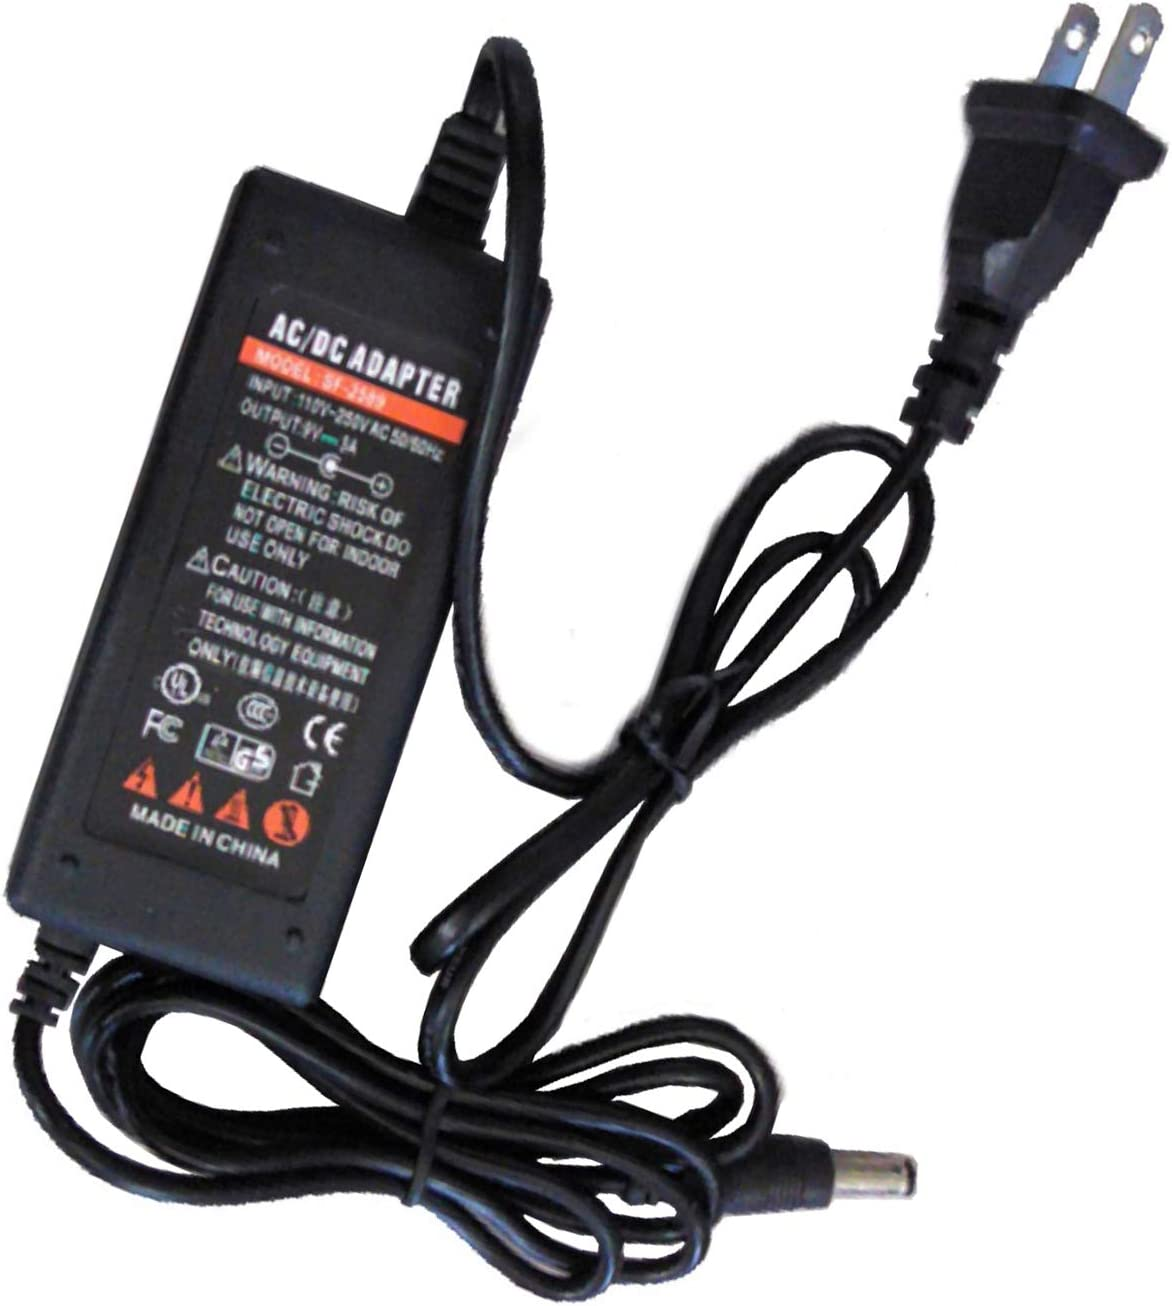 UpBright New Global 9V AC/DC Adapter Compatible with Life Fitness 118E-00001-0267 118E-00001-0165 118E-1-0267 118E-1-0165 LifeFitness 9VDC Power Supply Cord Cable PS Battery Charger Mains PSU